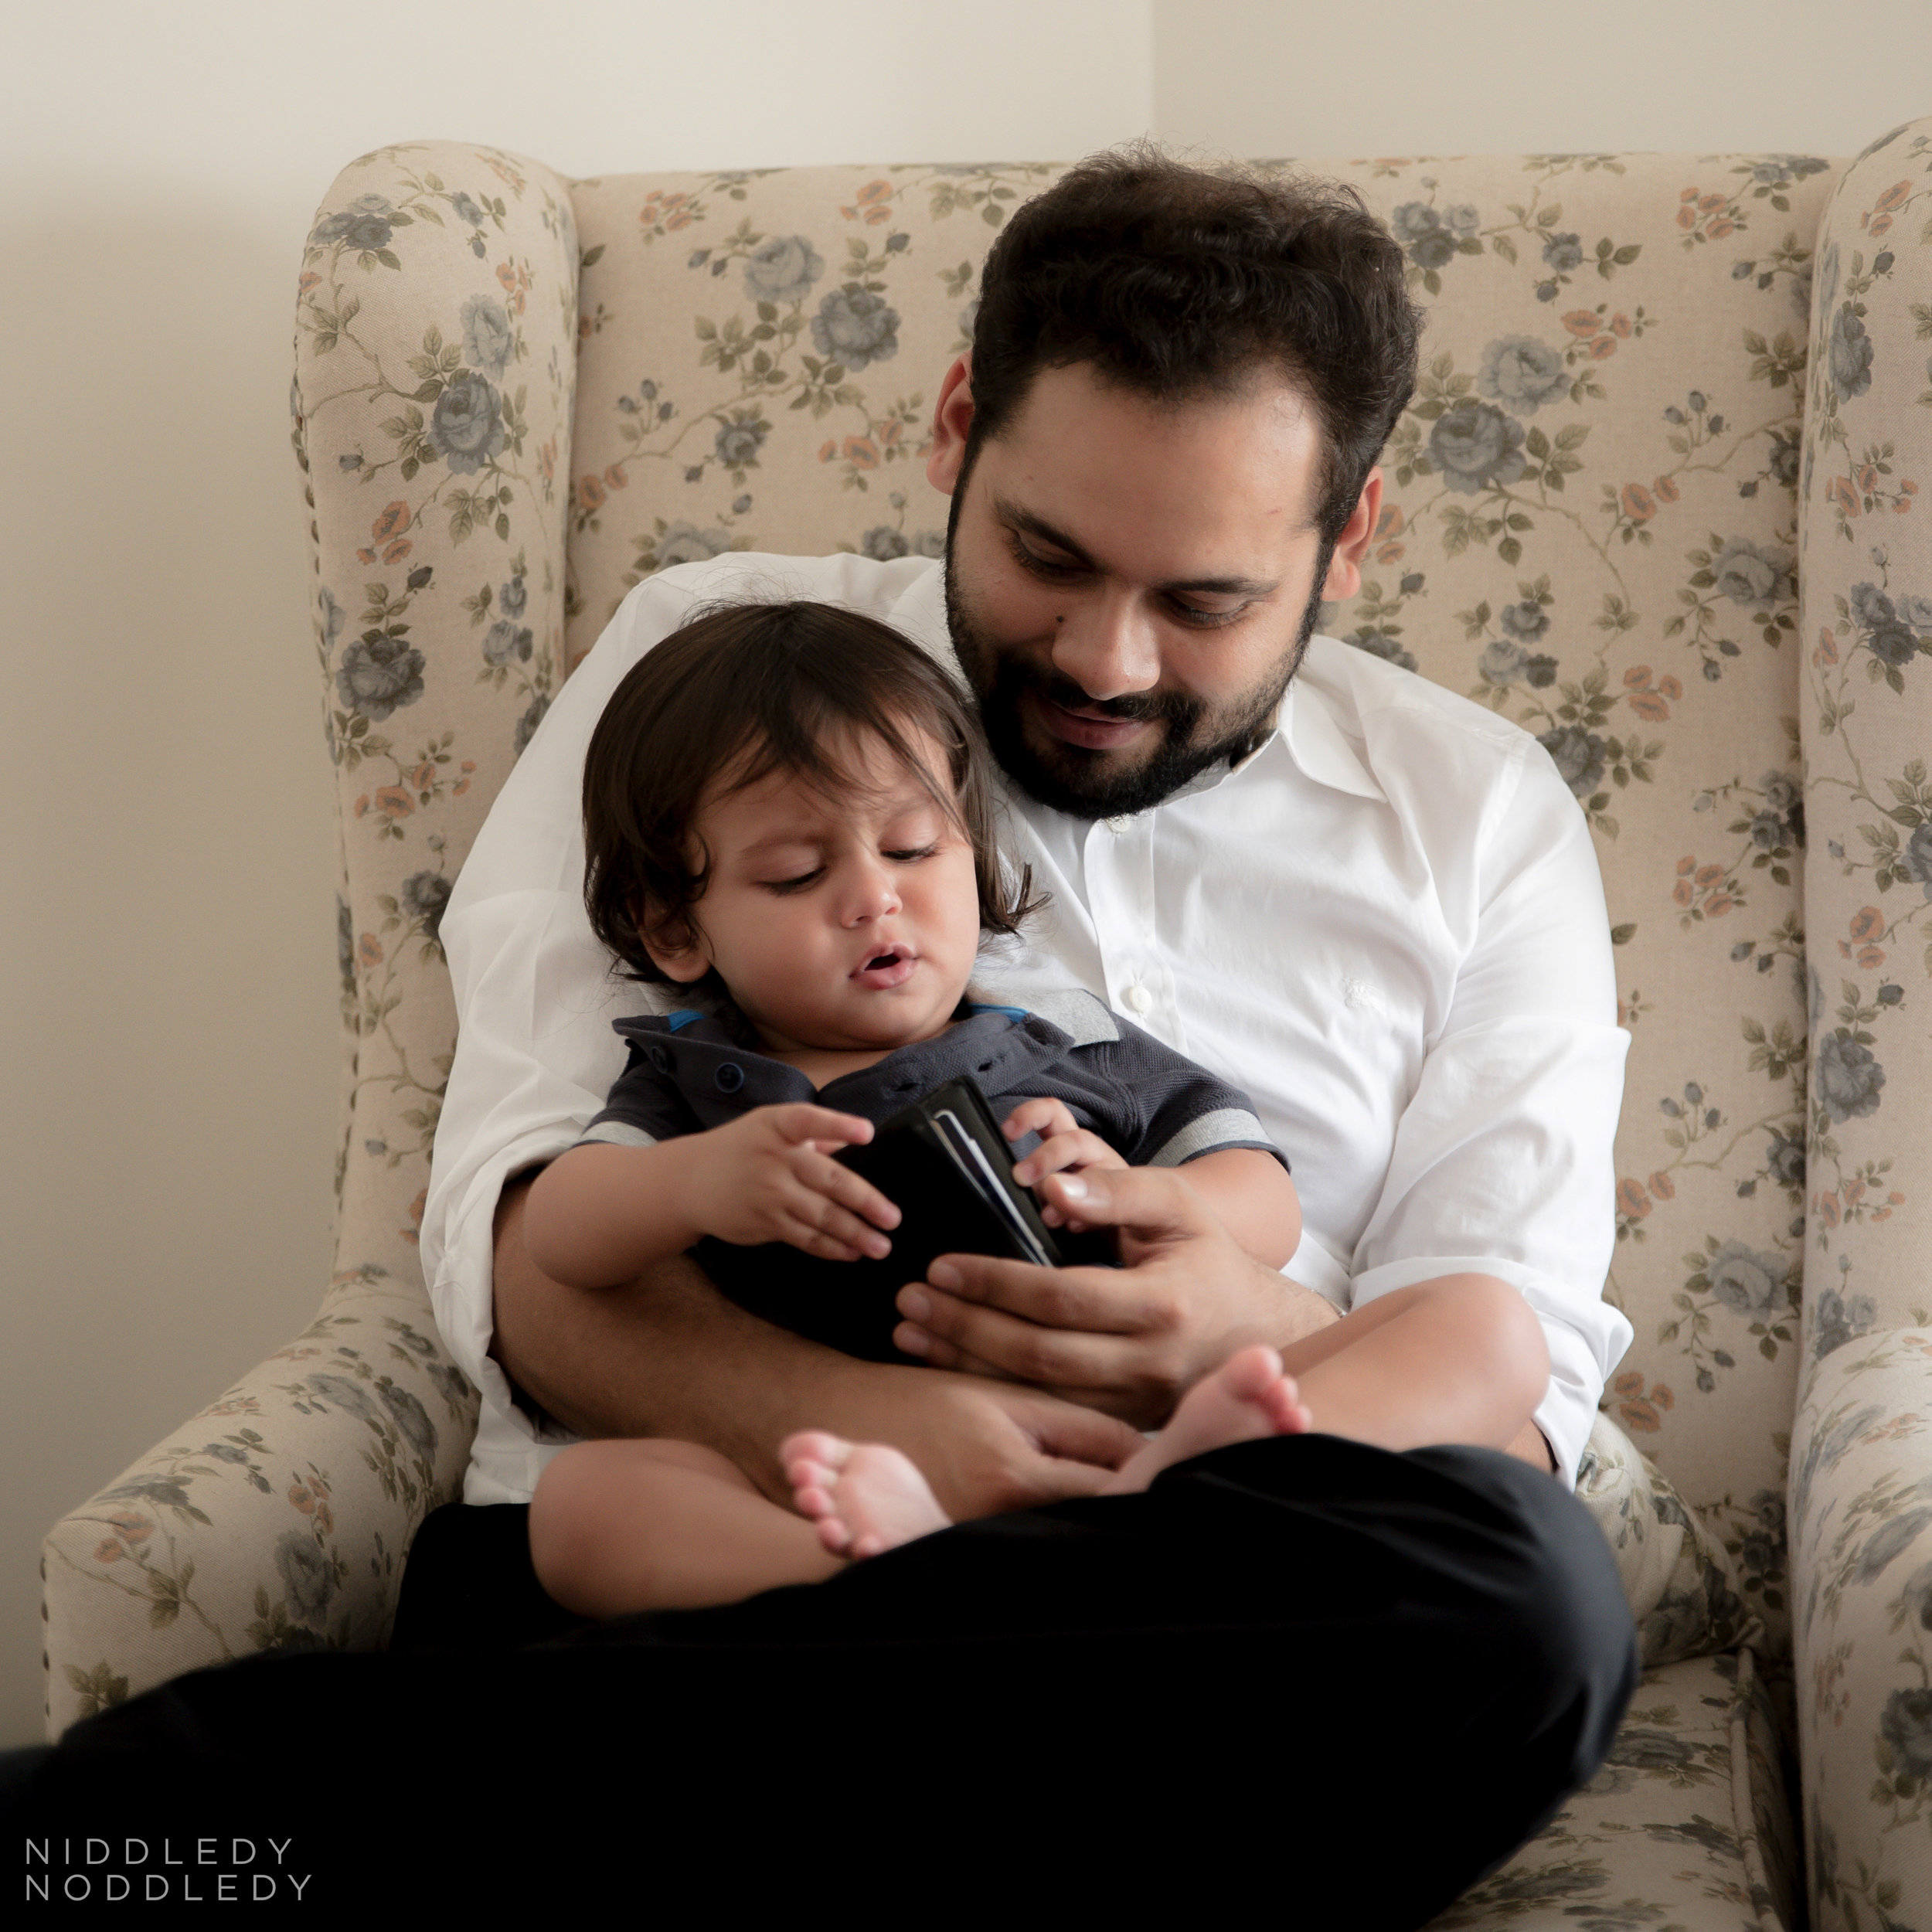 Avyaan's Day Photoshoot ❤ NiddledyNoddledy.com ~ Bumps to Babies Photography, Kolkata - 27.jpg